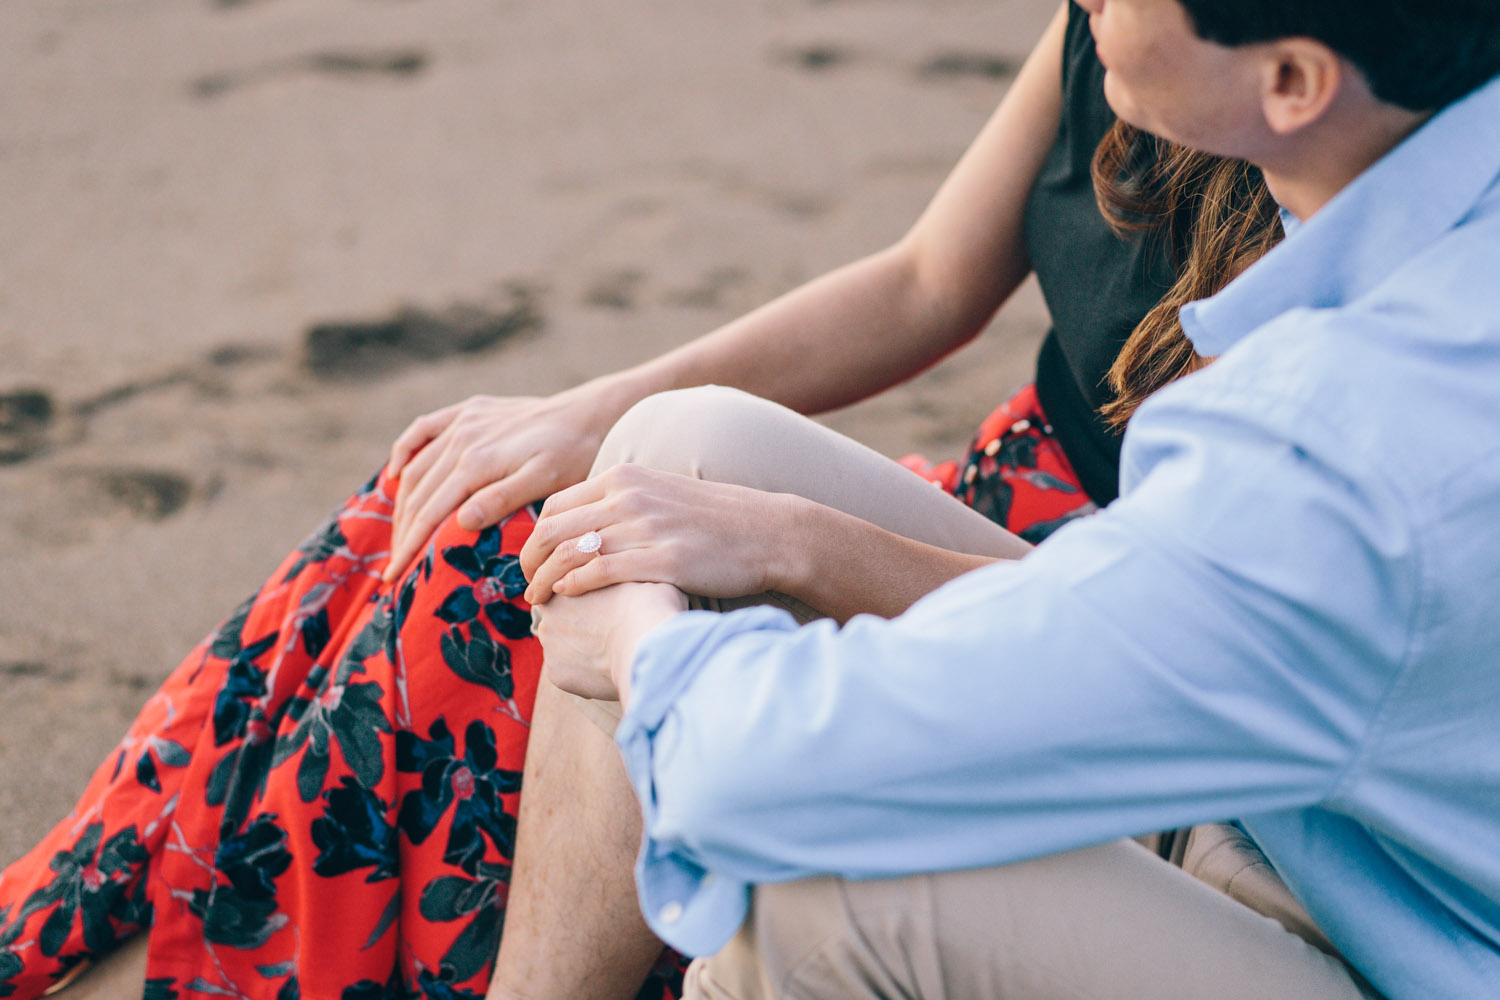 Engagement-Wedding-Photographer-San-Francisco-Engagement-session-Baker-Beach-Palace-of-Fine-Arts-and-Legion-of-Honor-byJBJ-Pictures-21.jpg